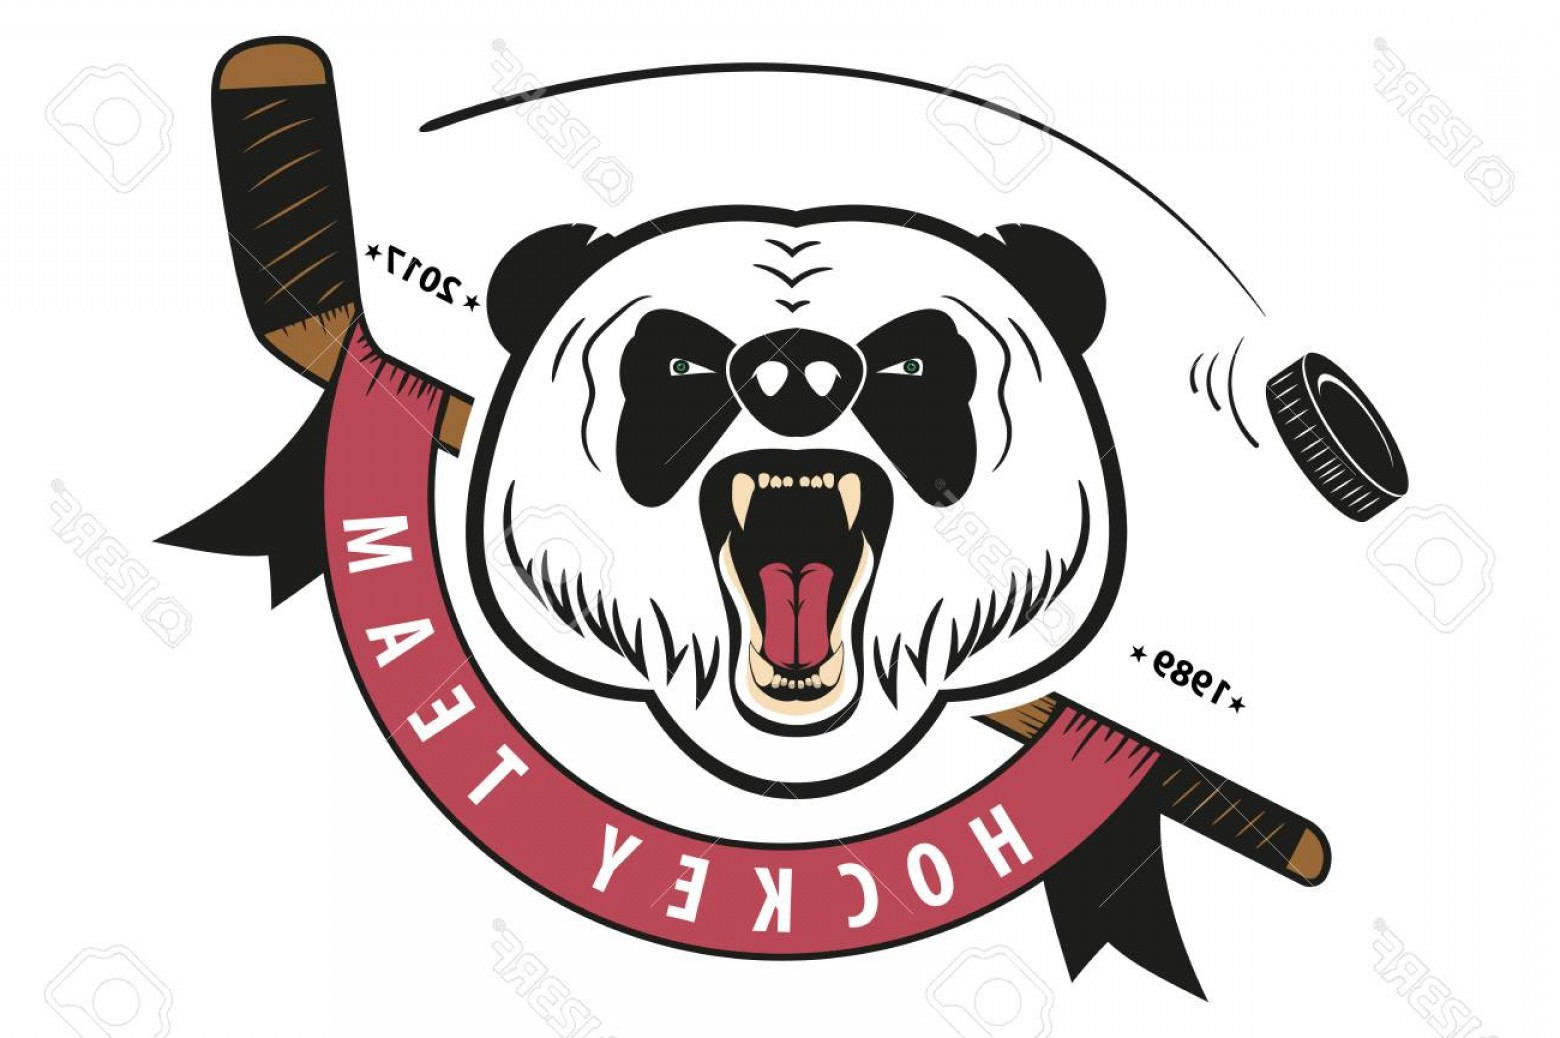 Hockey Teams Logo Vectors: Photostock Vector Angry Panda Hockey Team Logo Mascot Emblem Of A Panda On A White Background Layered Vector Illustrat